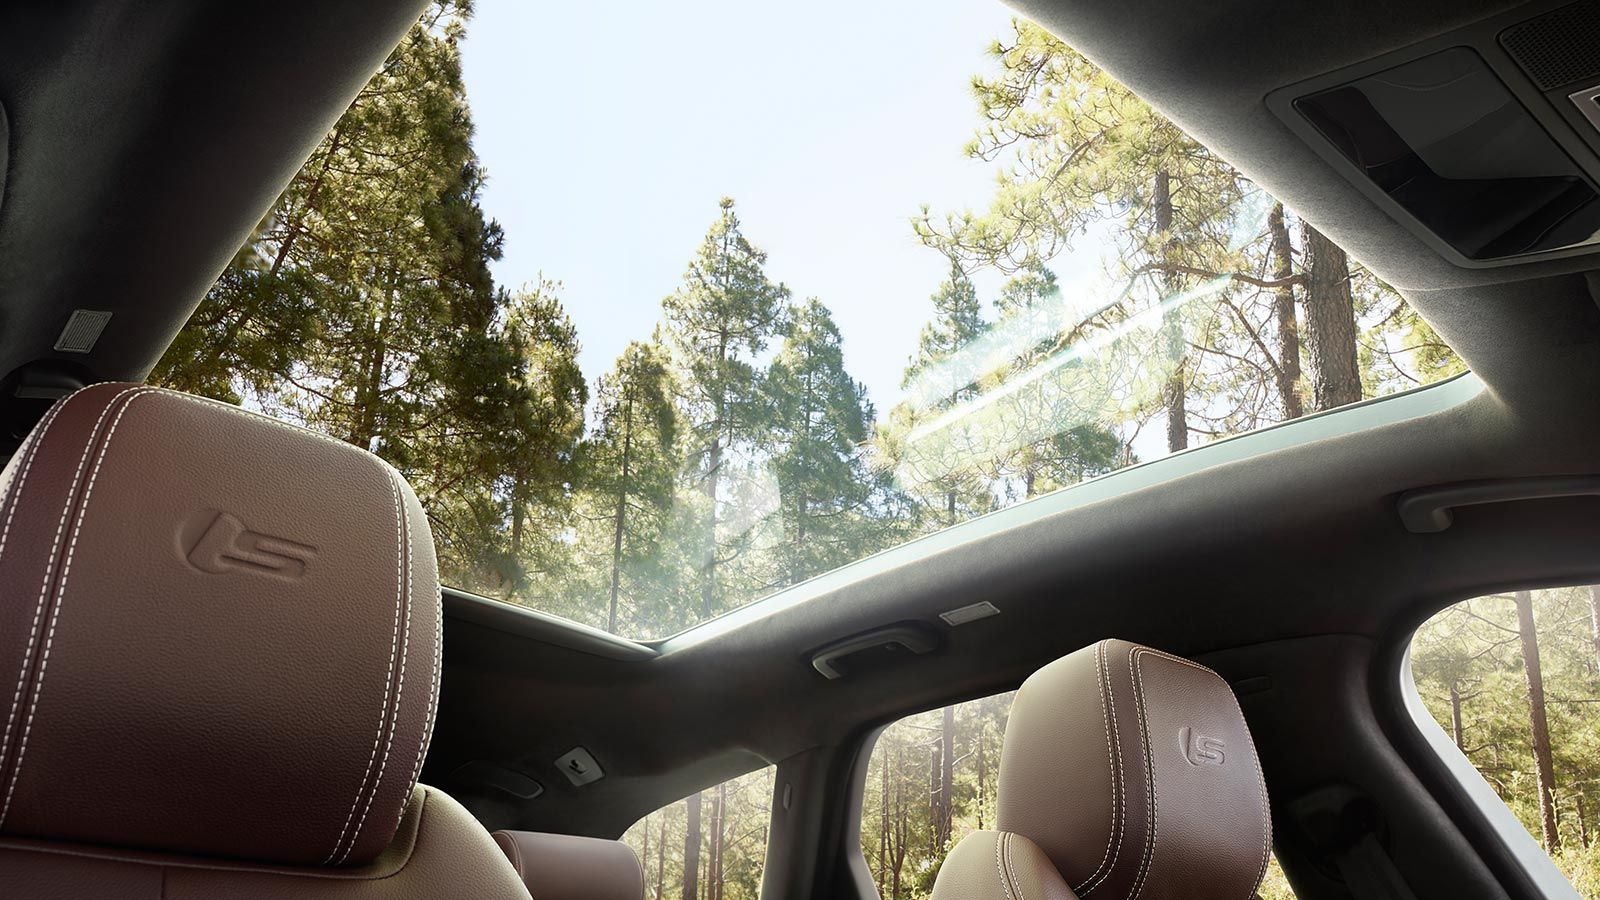 Jaguar XF Panoramic Glass Roof.